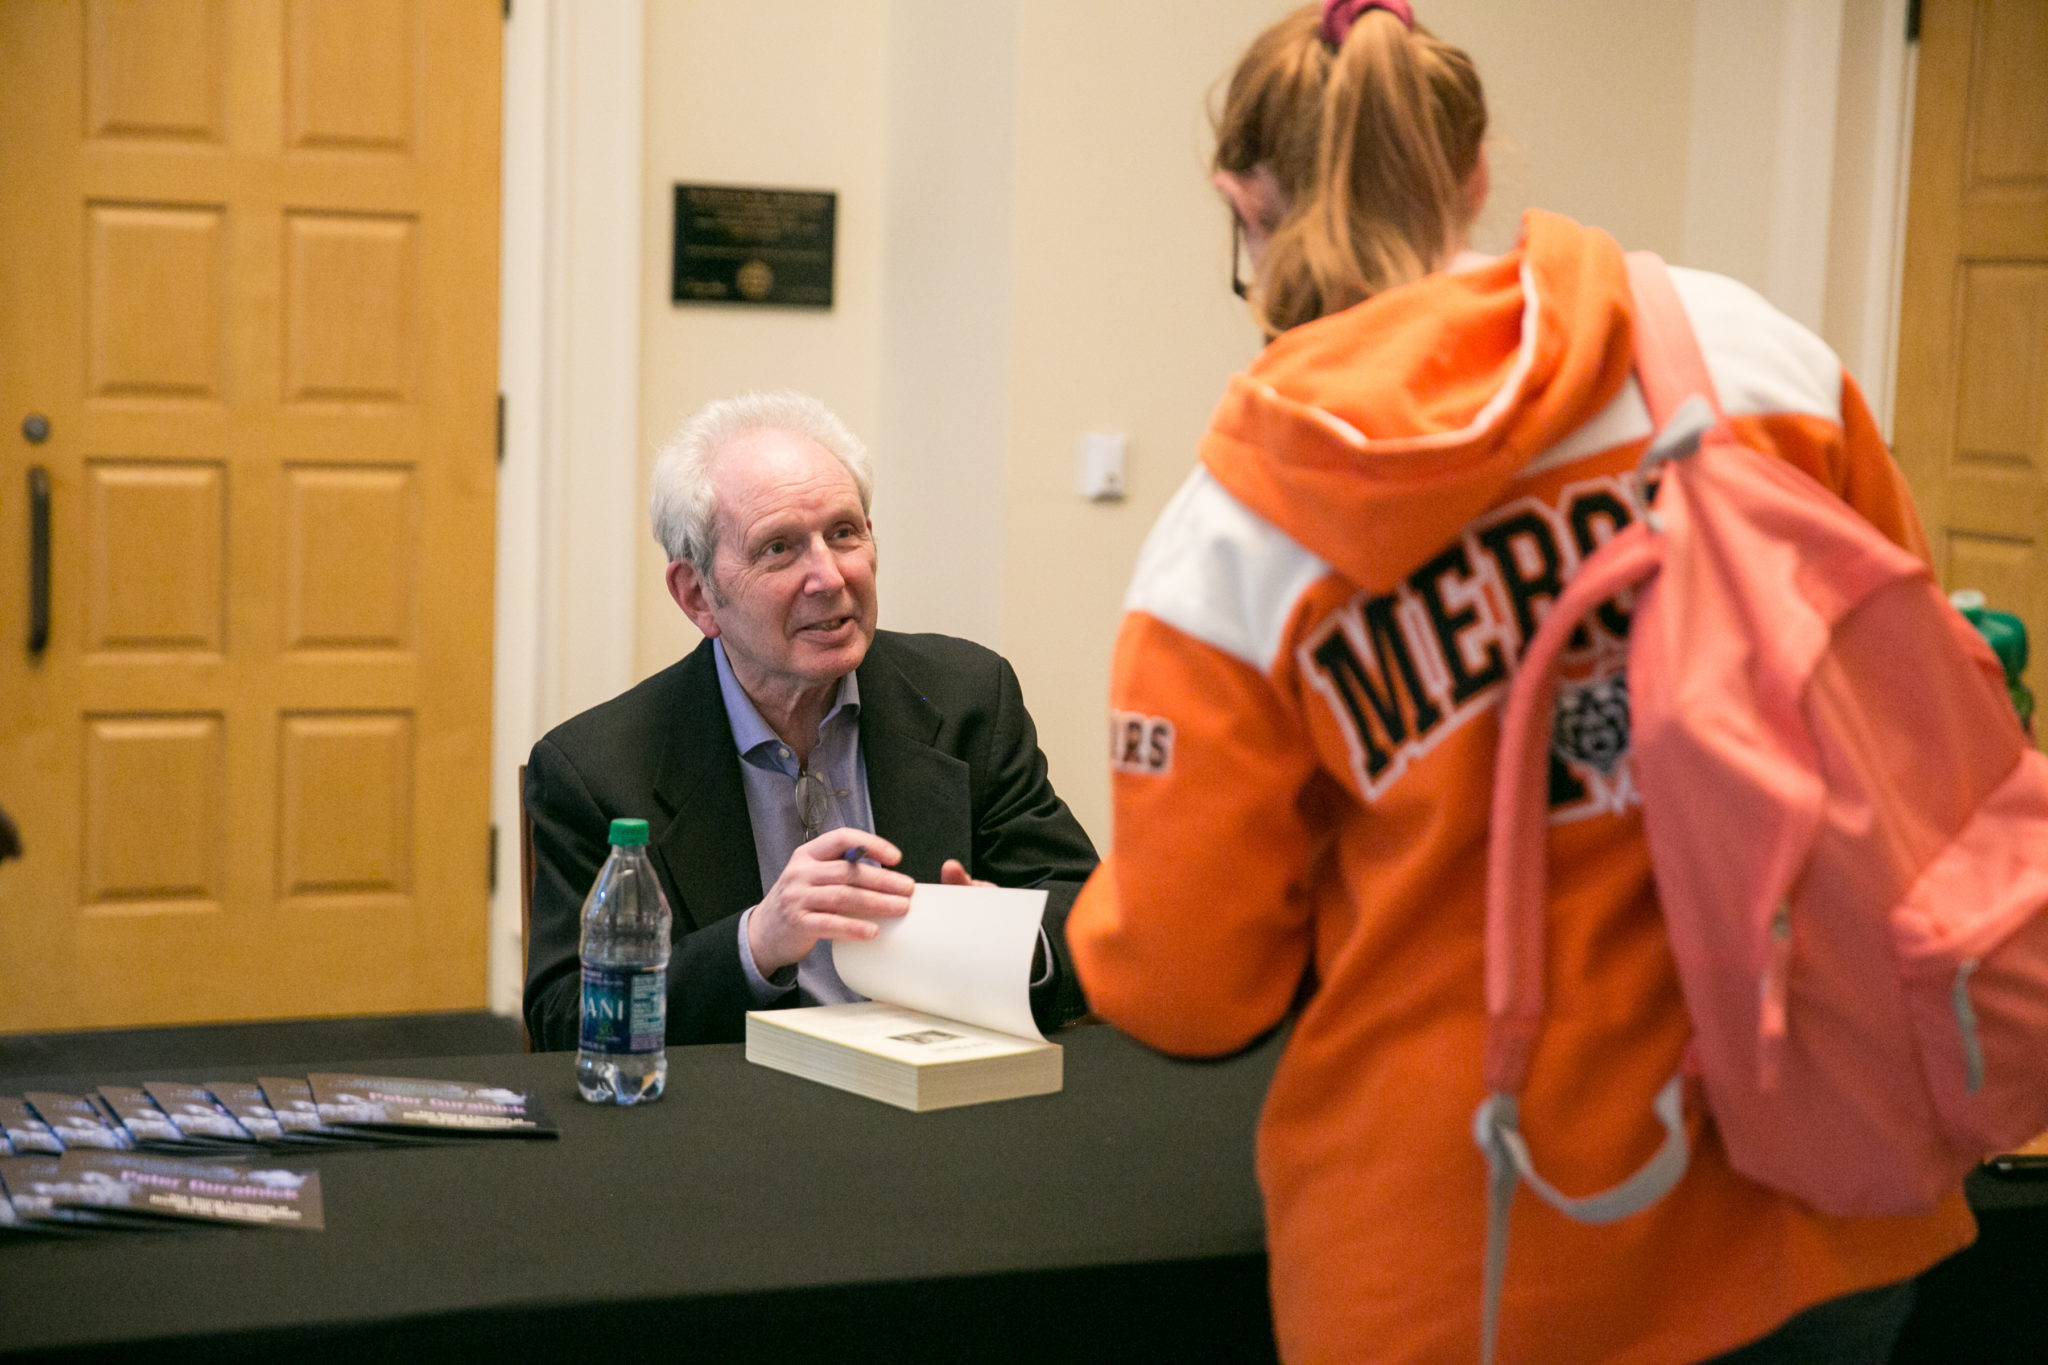 Peter Guralnick signs a book for a Mercer student